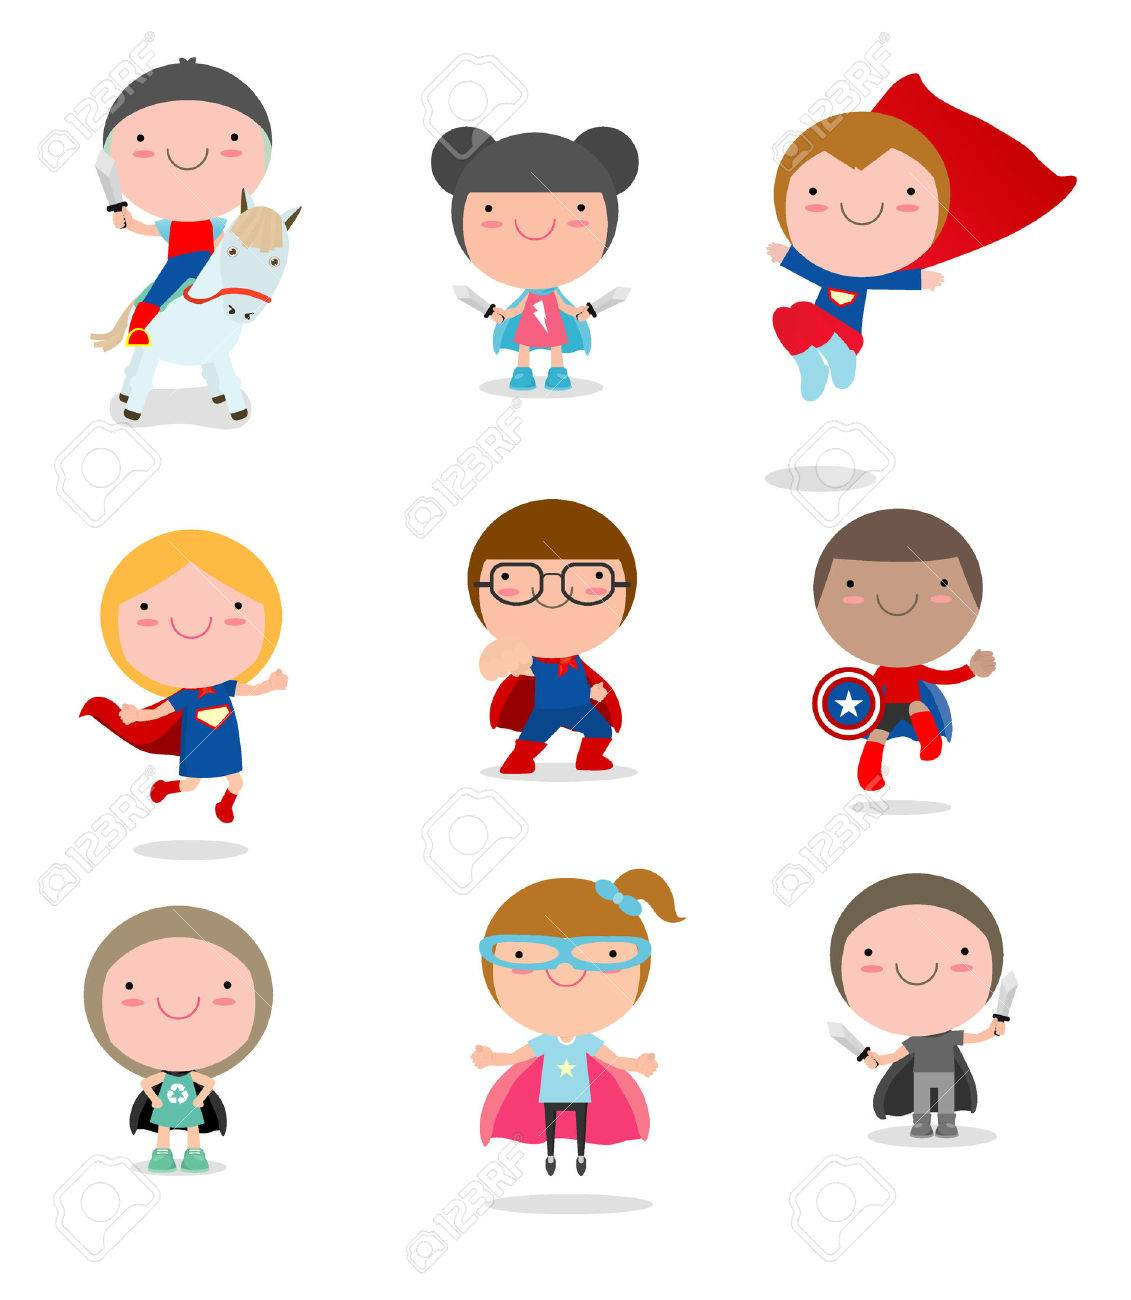 Kids With Superhero Costumes set, kids in Superhero costume characters isolated on white background, Cute little Superhero Children's collection, Superhero Children's, Superhero Kids. - 69427273